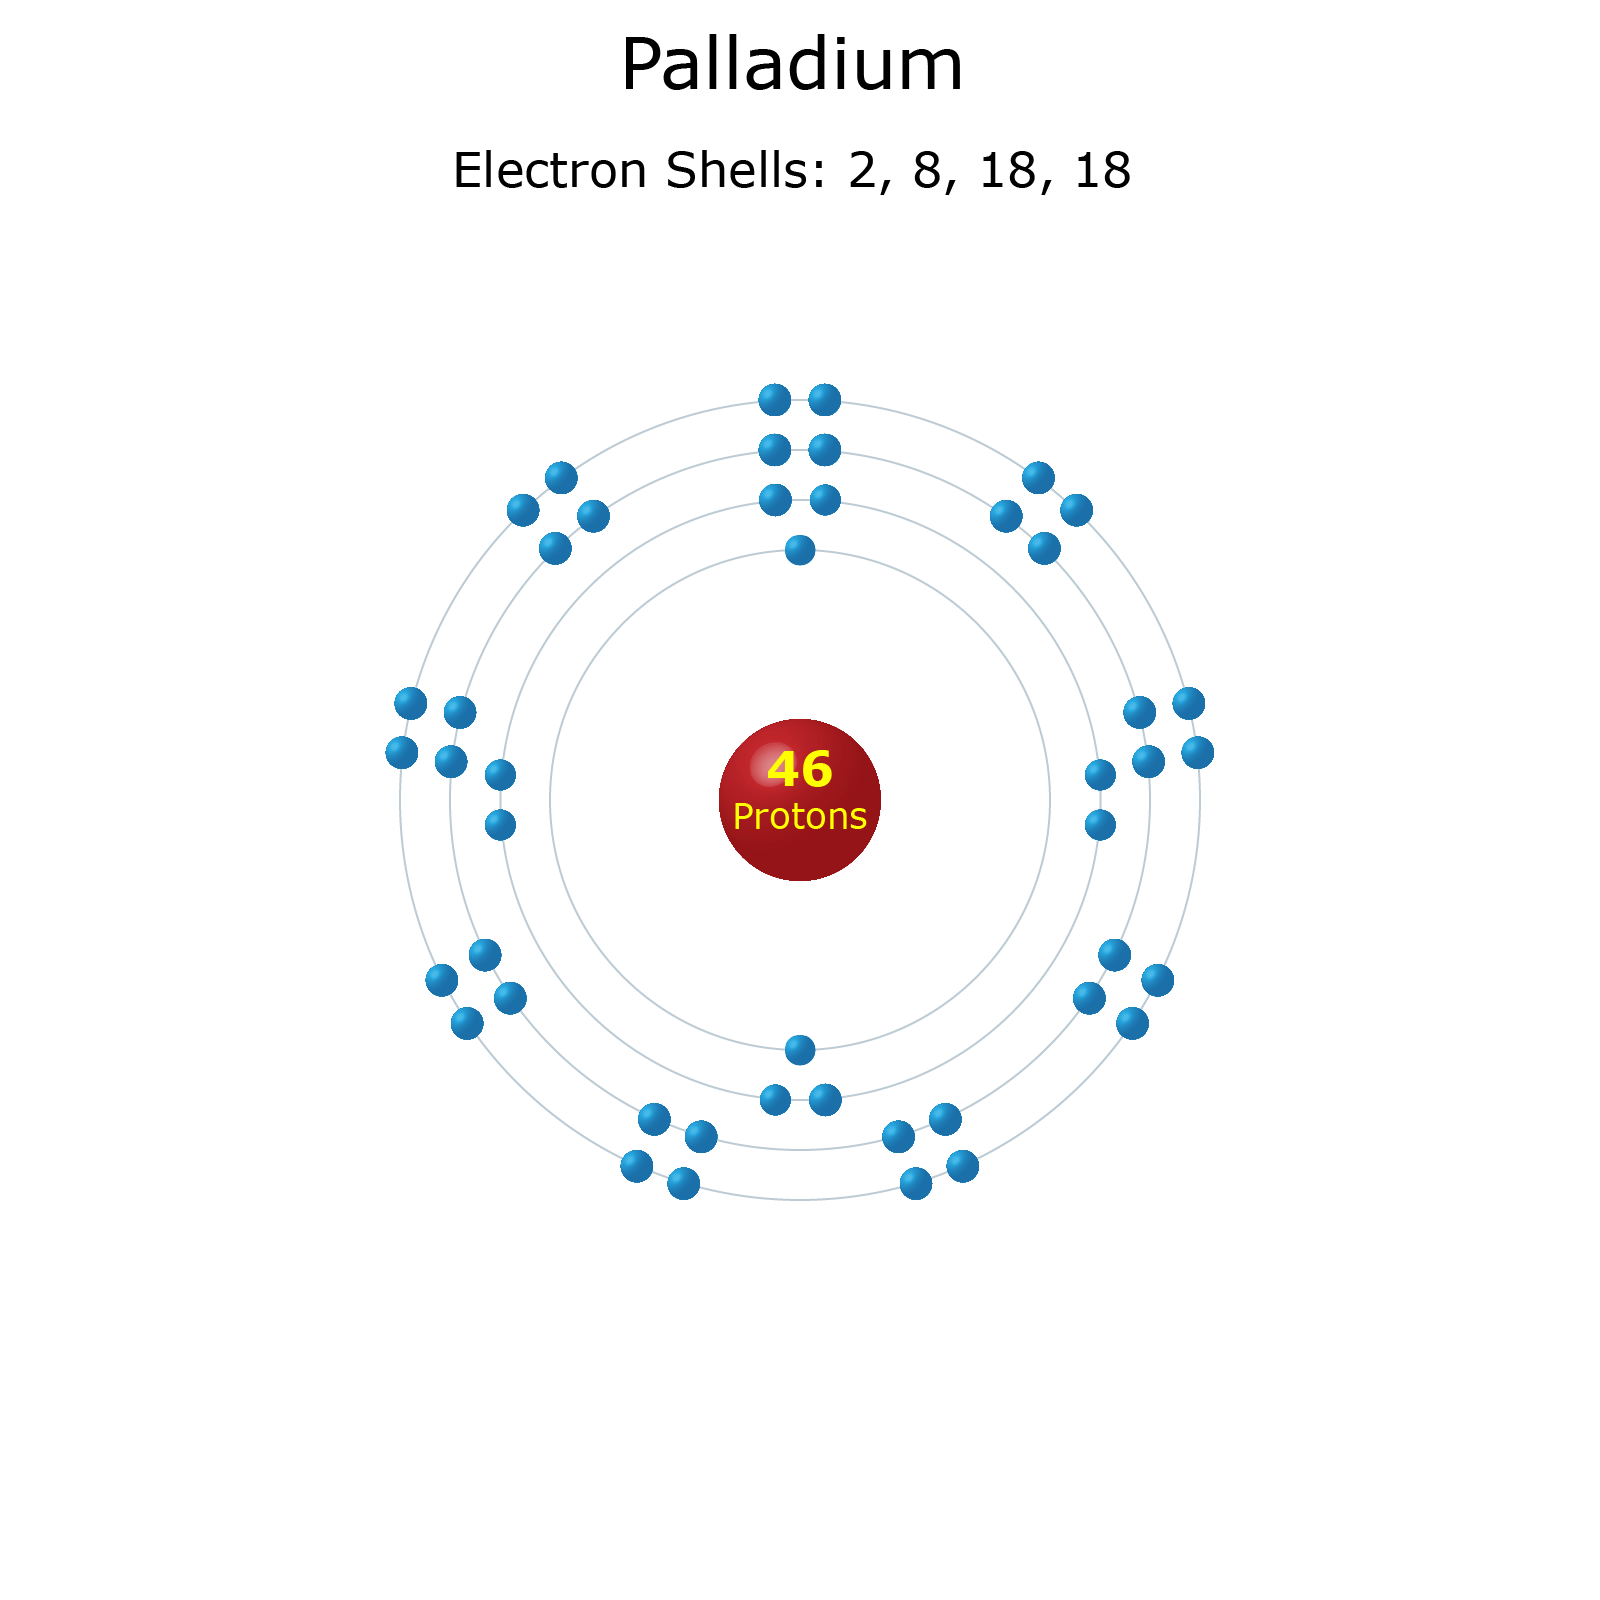 hight resolution of electron levels of a palladium atom